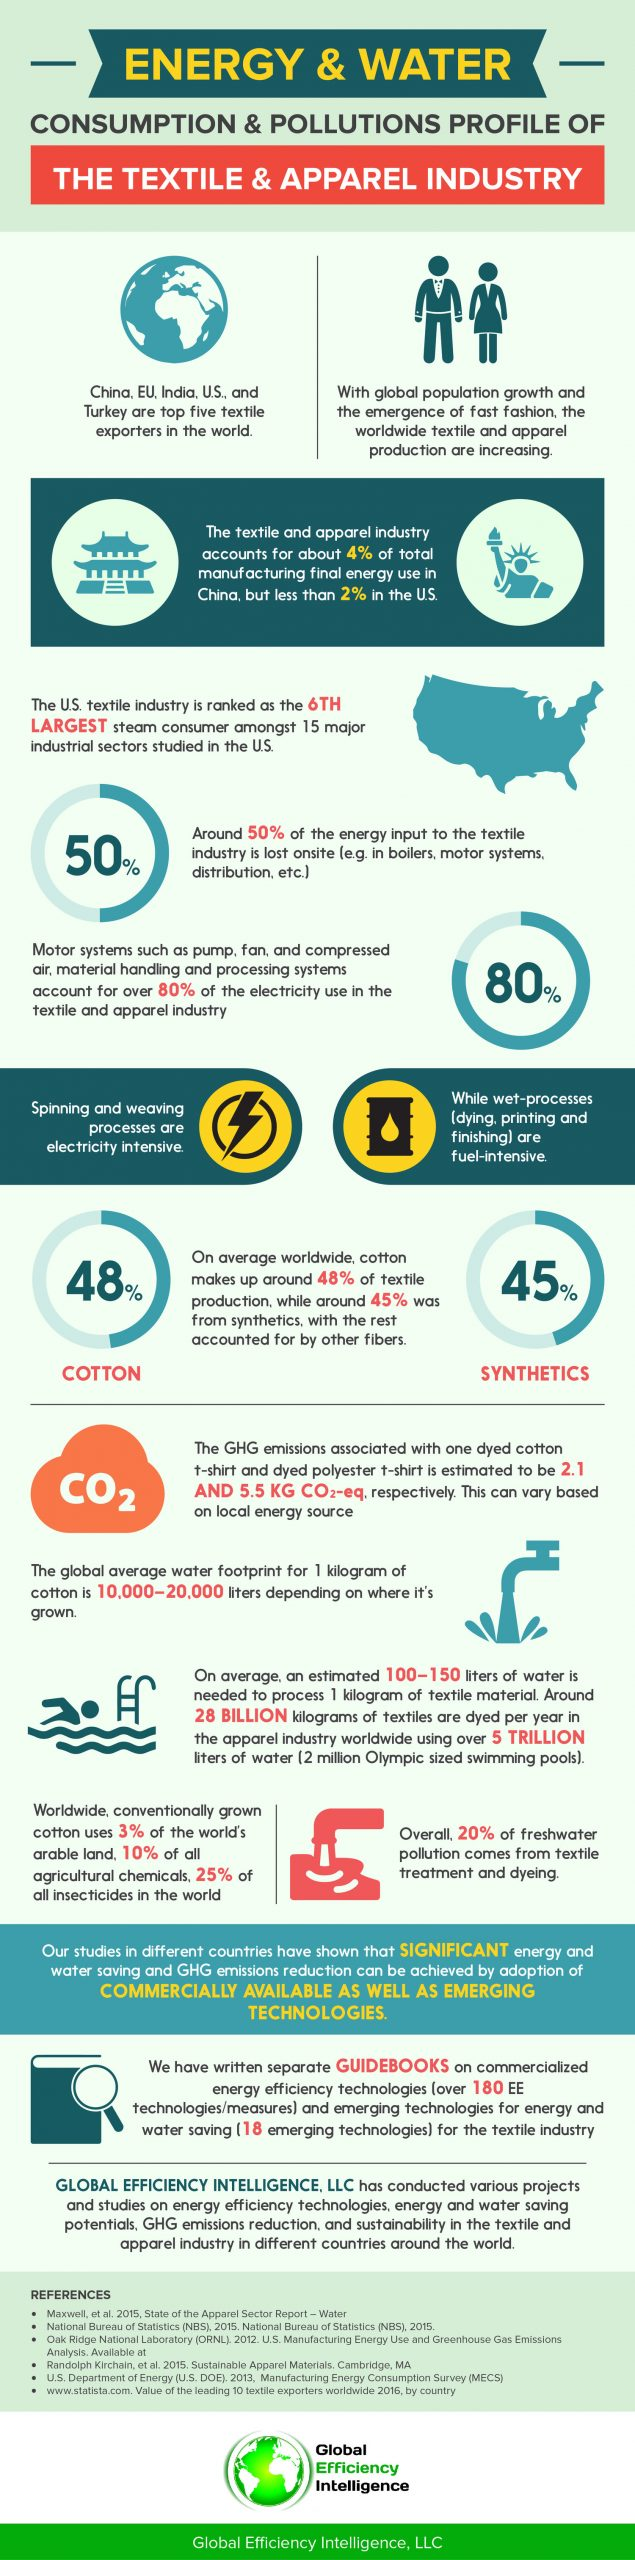 Textile and Apparel Industry Energy and Water Consumption and Pollutions Profile